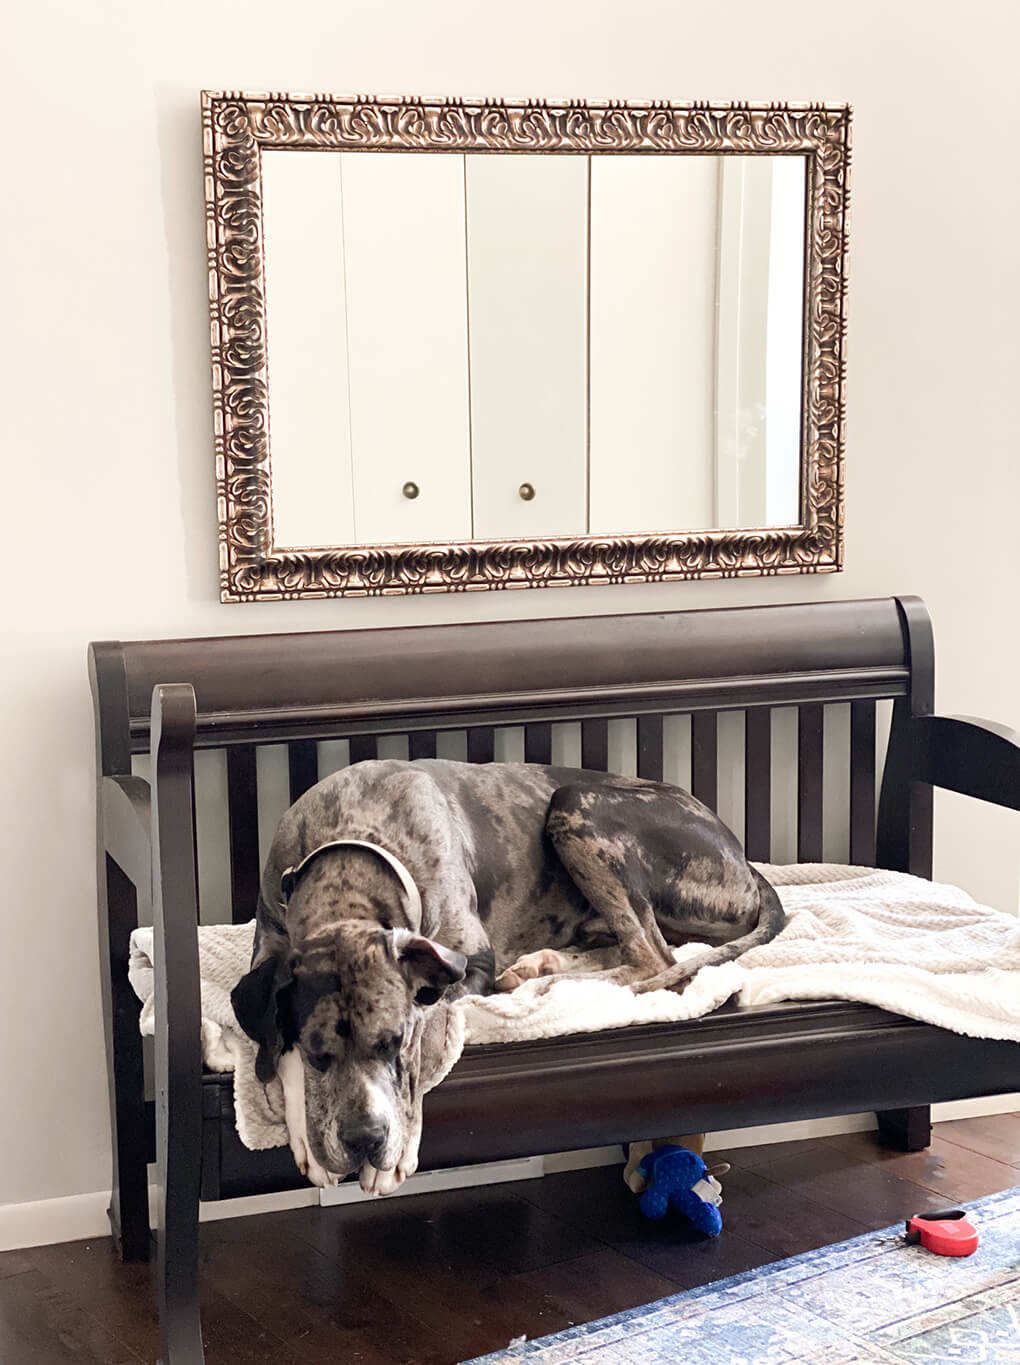 A Gutsy Girl's Favorites Issue 17 agutsygirl.com #healthyliving #greatdane #adoptdogs #fosteradopt Harley on dad's bench